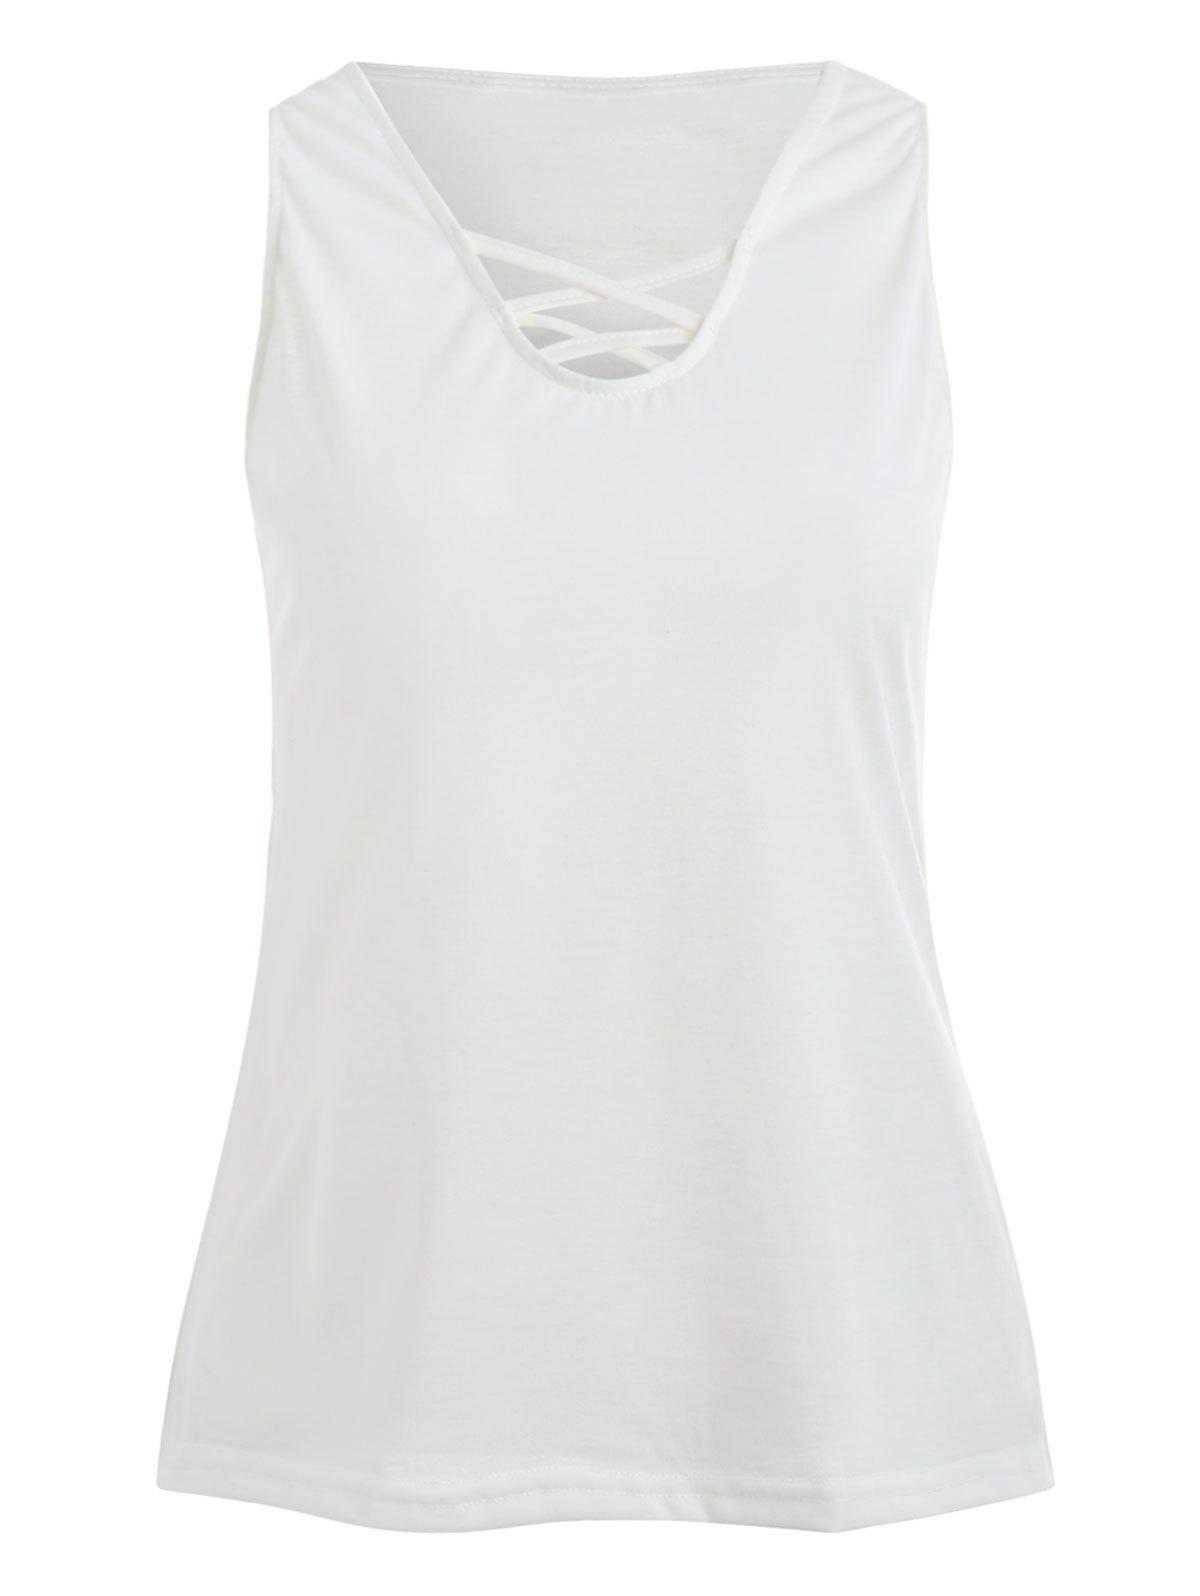 Cheap Sleeveless Criss Cross Tank Top